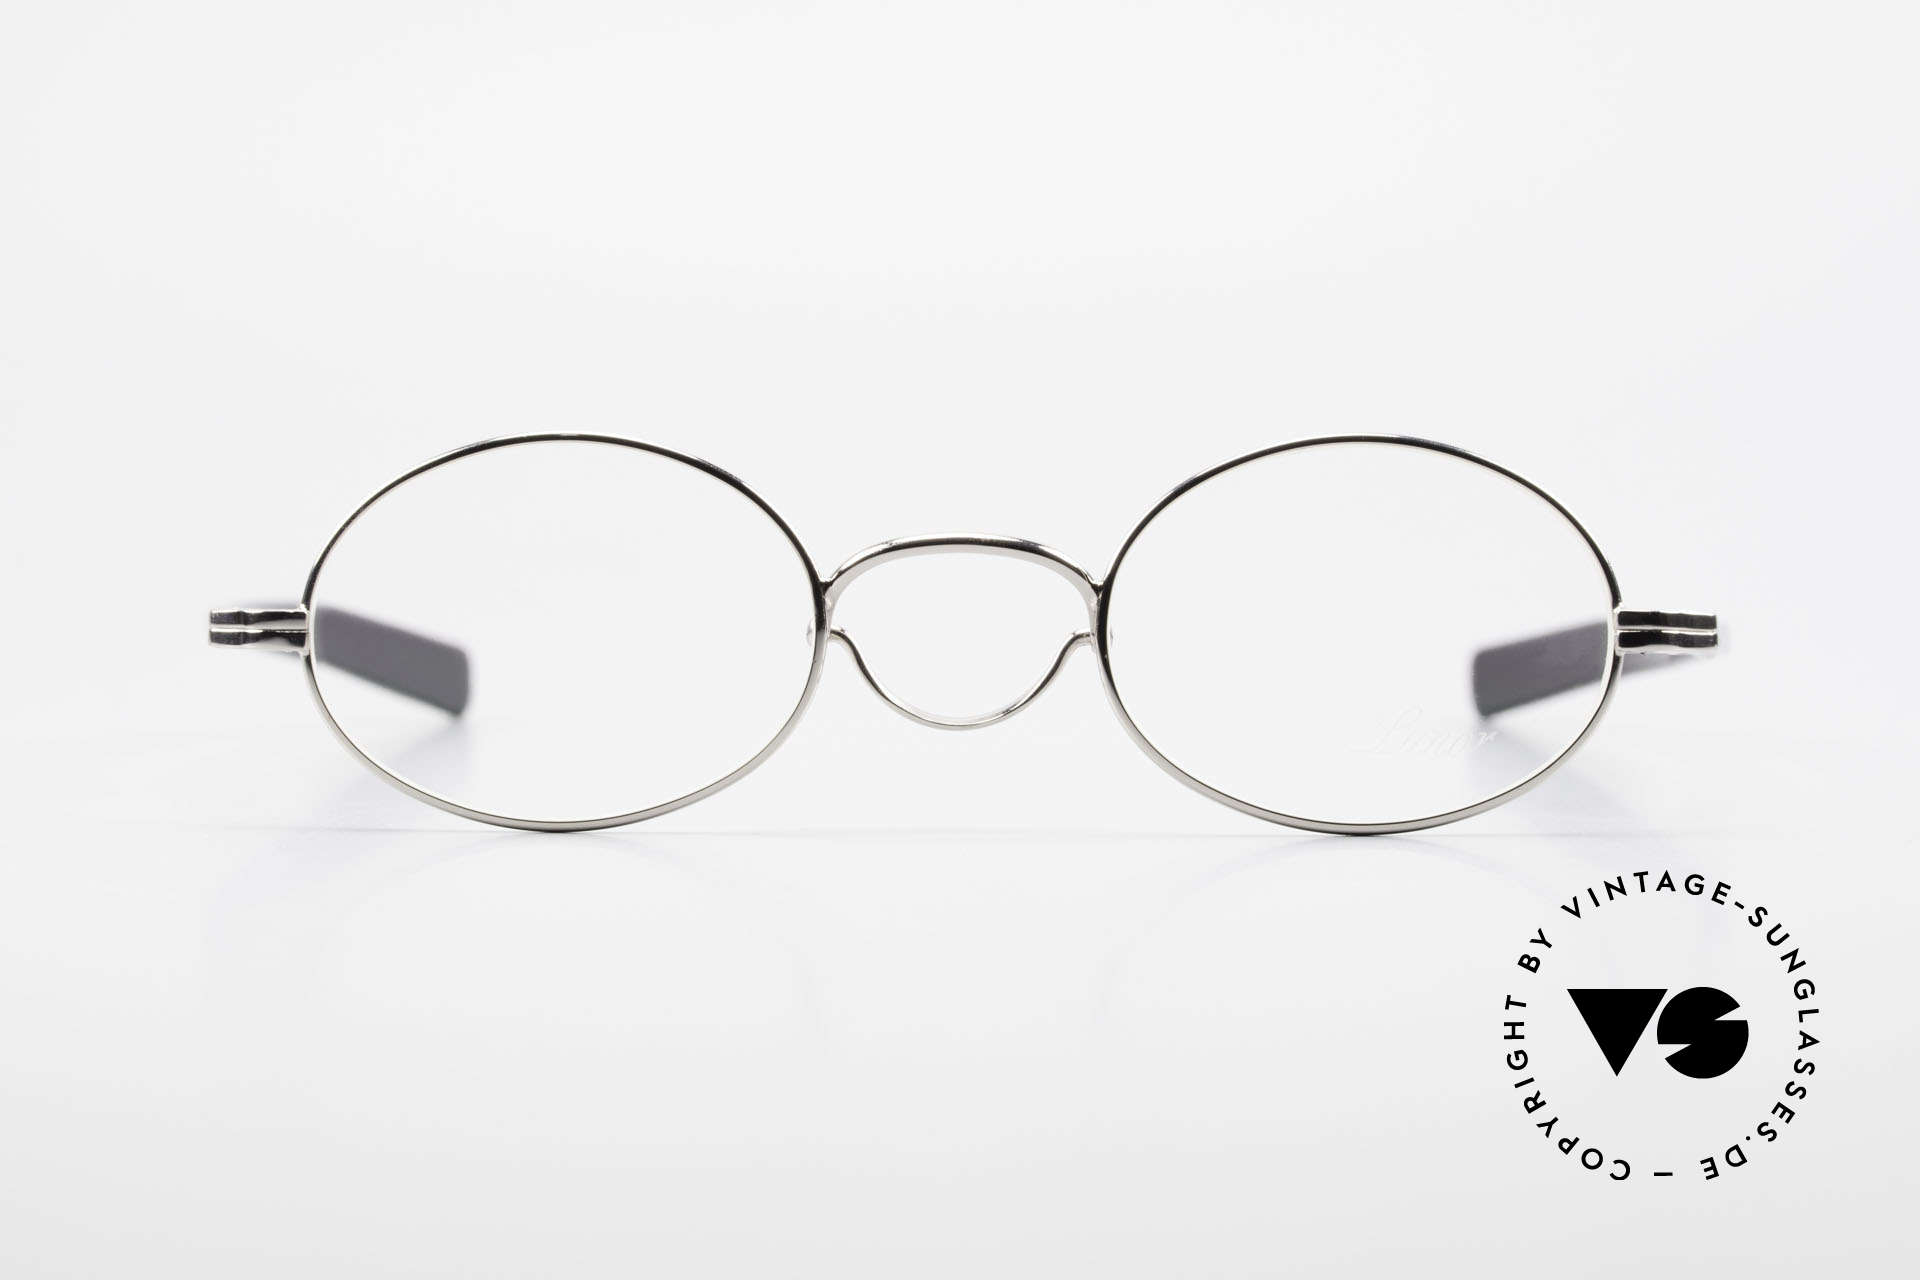 """Lunor Swing A 33 Oval Swing Bridge Vintage Glasses, well-known for the """"W-bridge"""" & the plain frame designs, Made for Men and Women"""